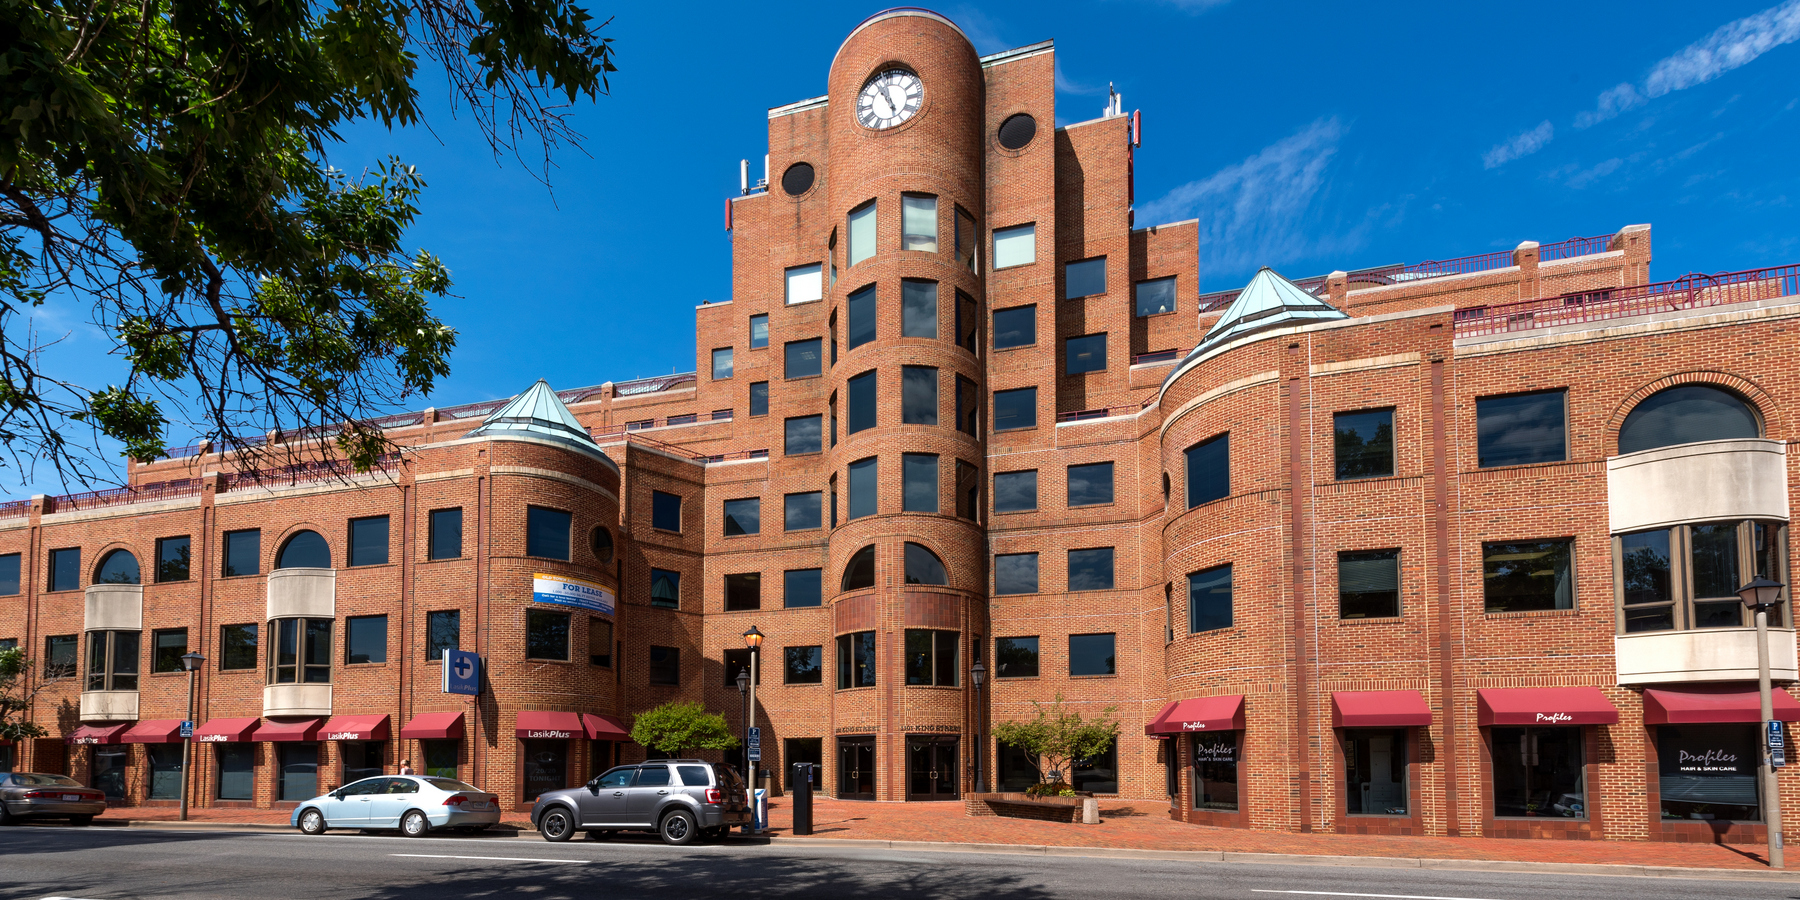 1101 King Street in Alexandria, VA Office space for lease